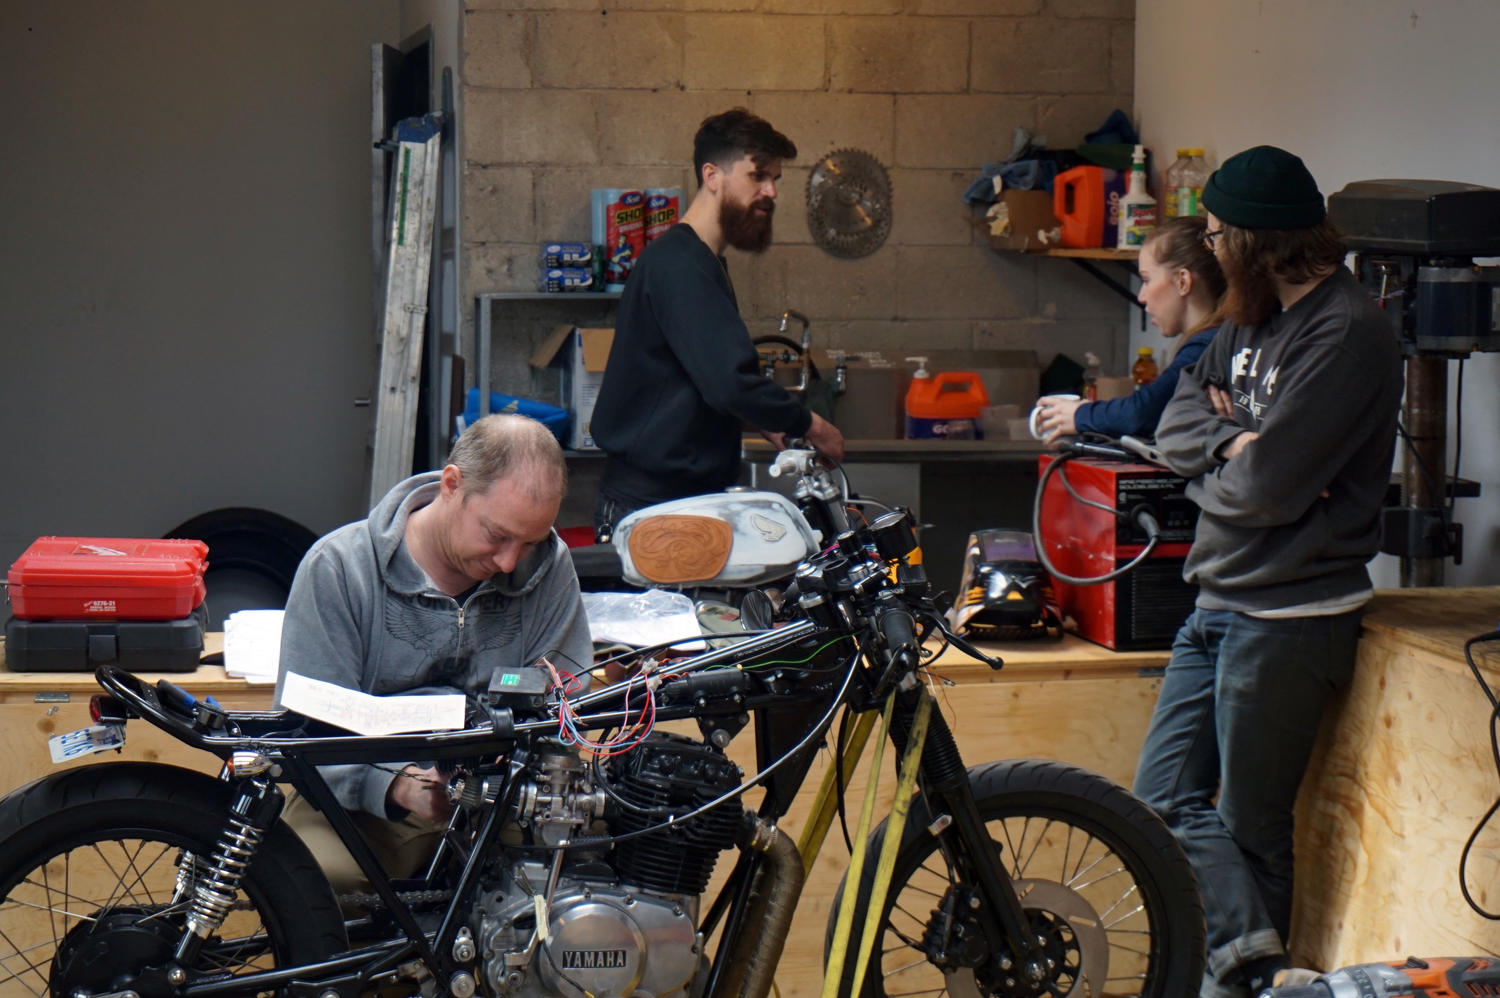 Moto revere diy motorcycle garage in toronto northern ontario travel currently there are 40 members and growing solutioingenieria Image collections